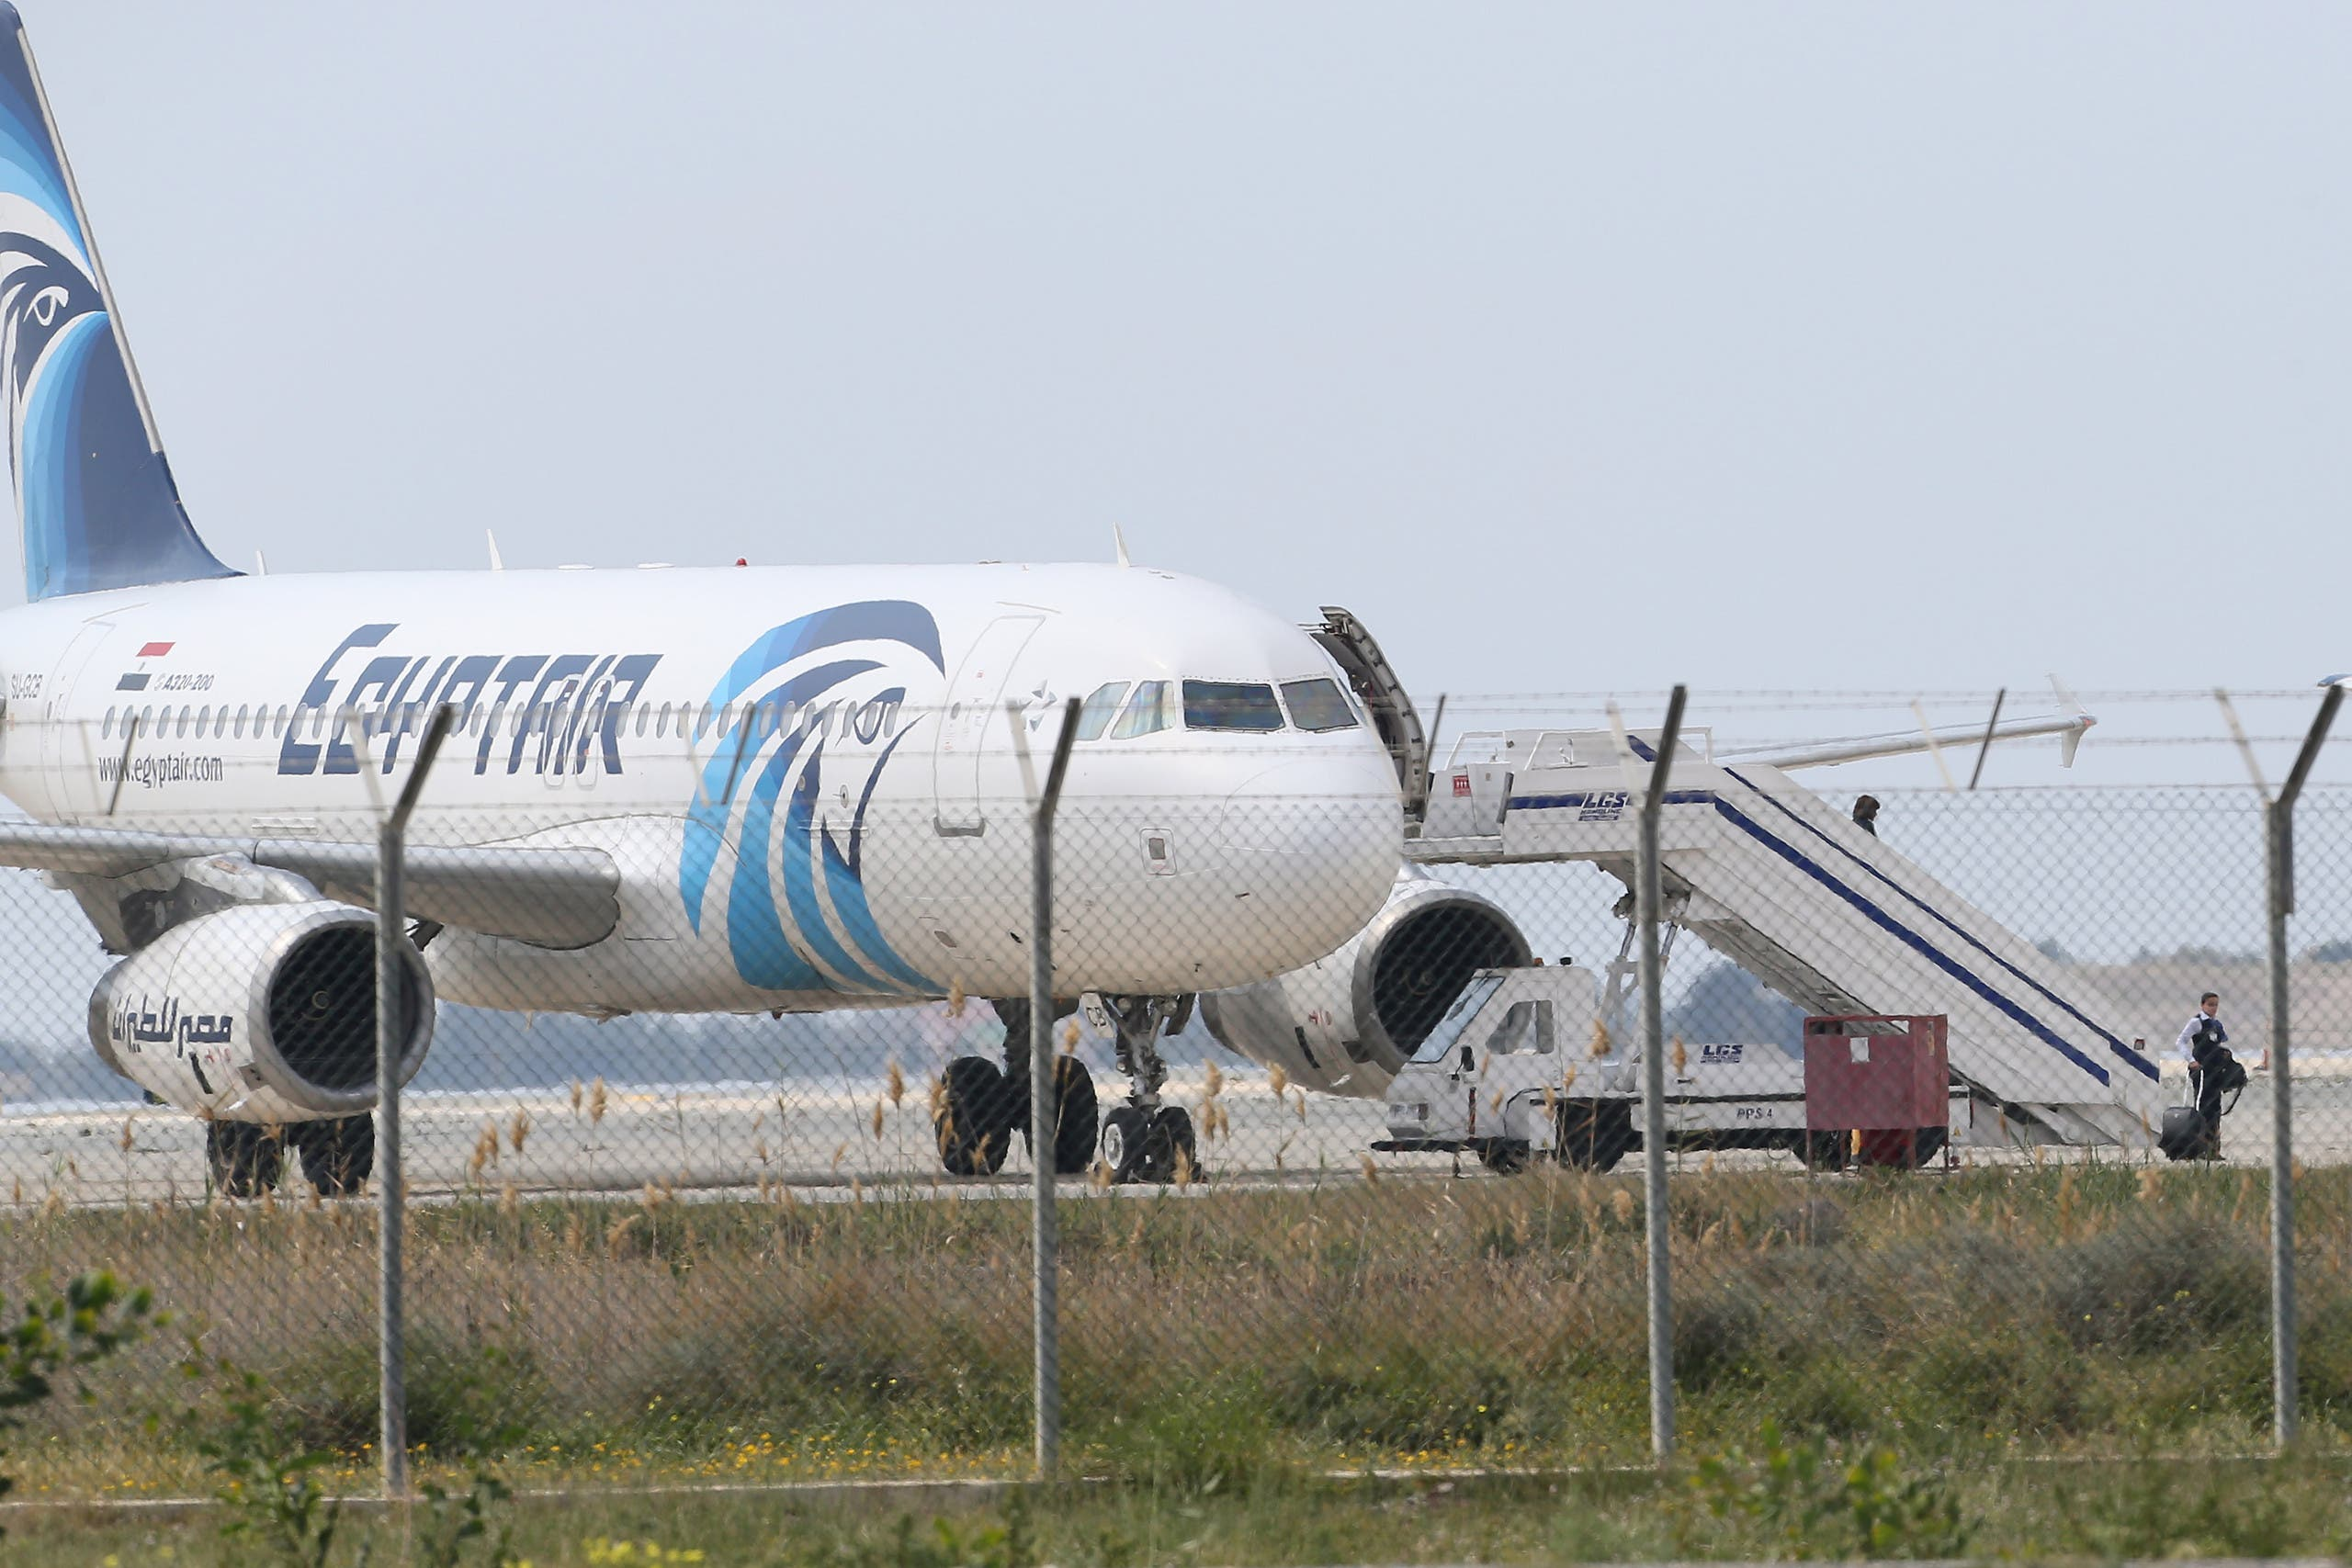 Passengers leave the hijacked aircraft of Egyptair after landing at Larnaca airport Tuesday, March 29, 2016 in Larnaca, Cyprus. AP